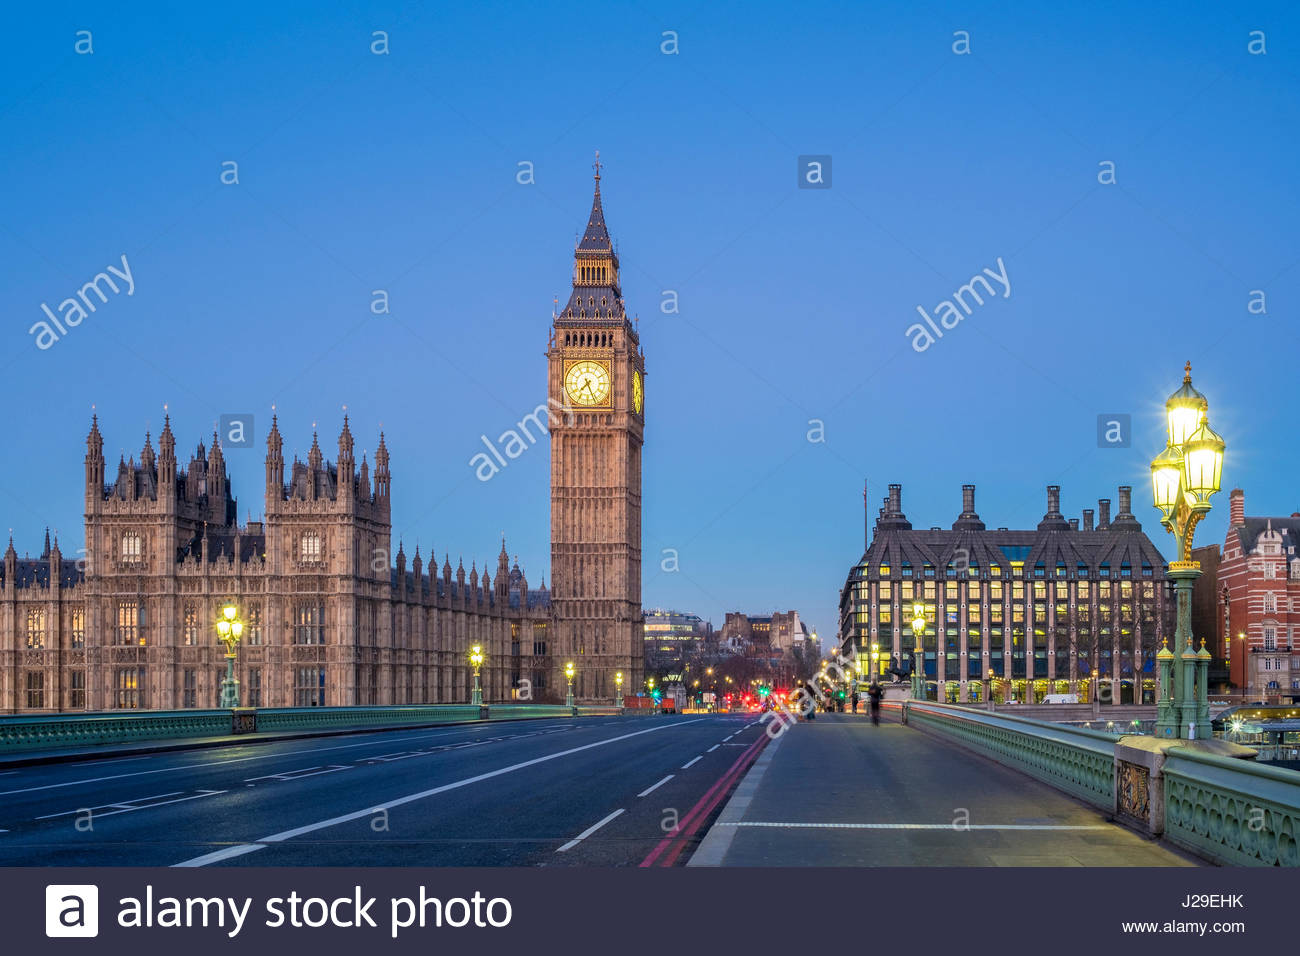 United Kingdom, England, London. Big Ben and Westminster Palace (Houses of Parliament) at dawn. - Stock Image